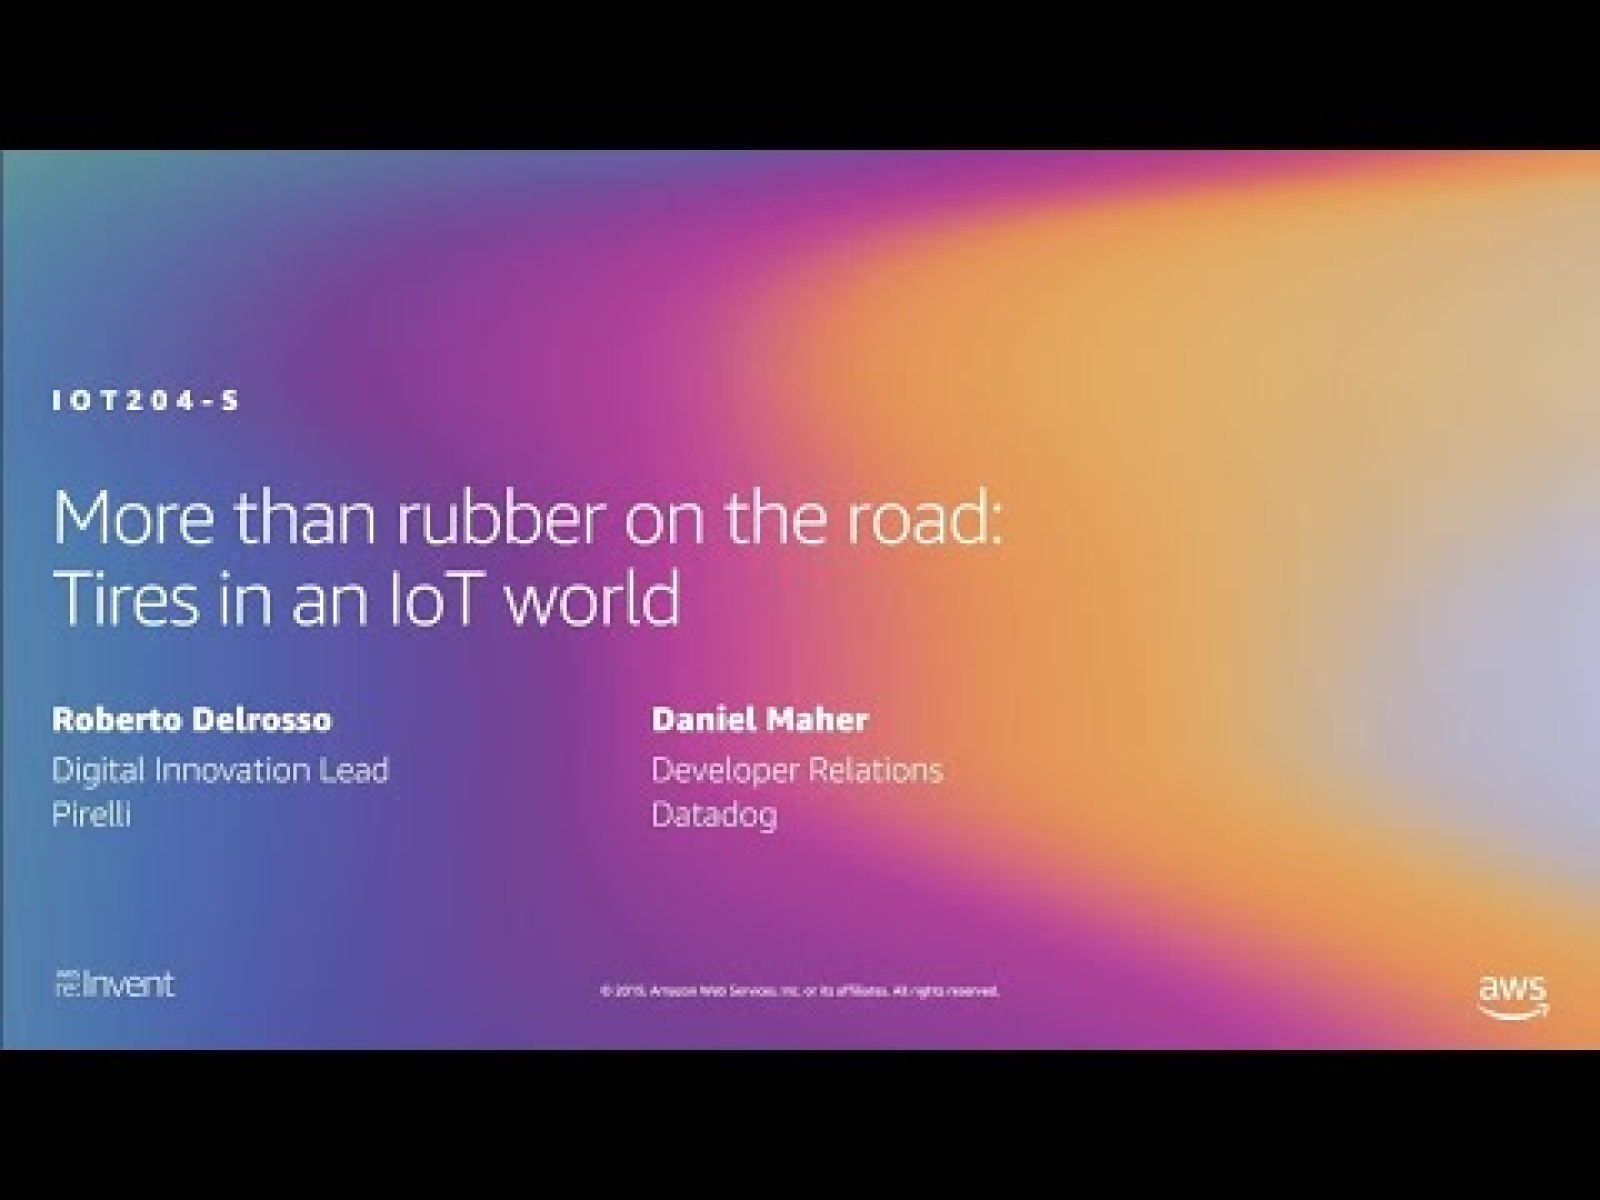 More than rubber on the road: Tires in an IoT world